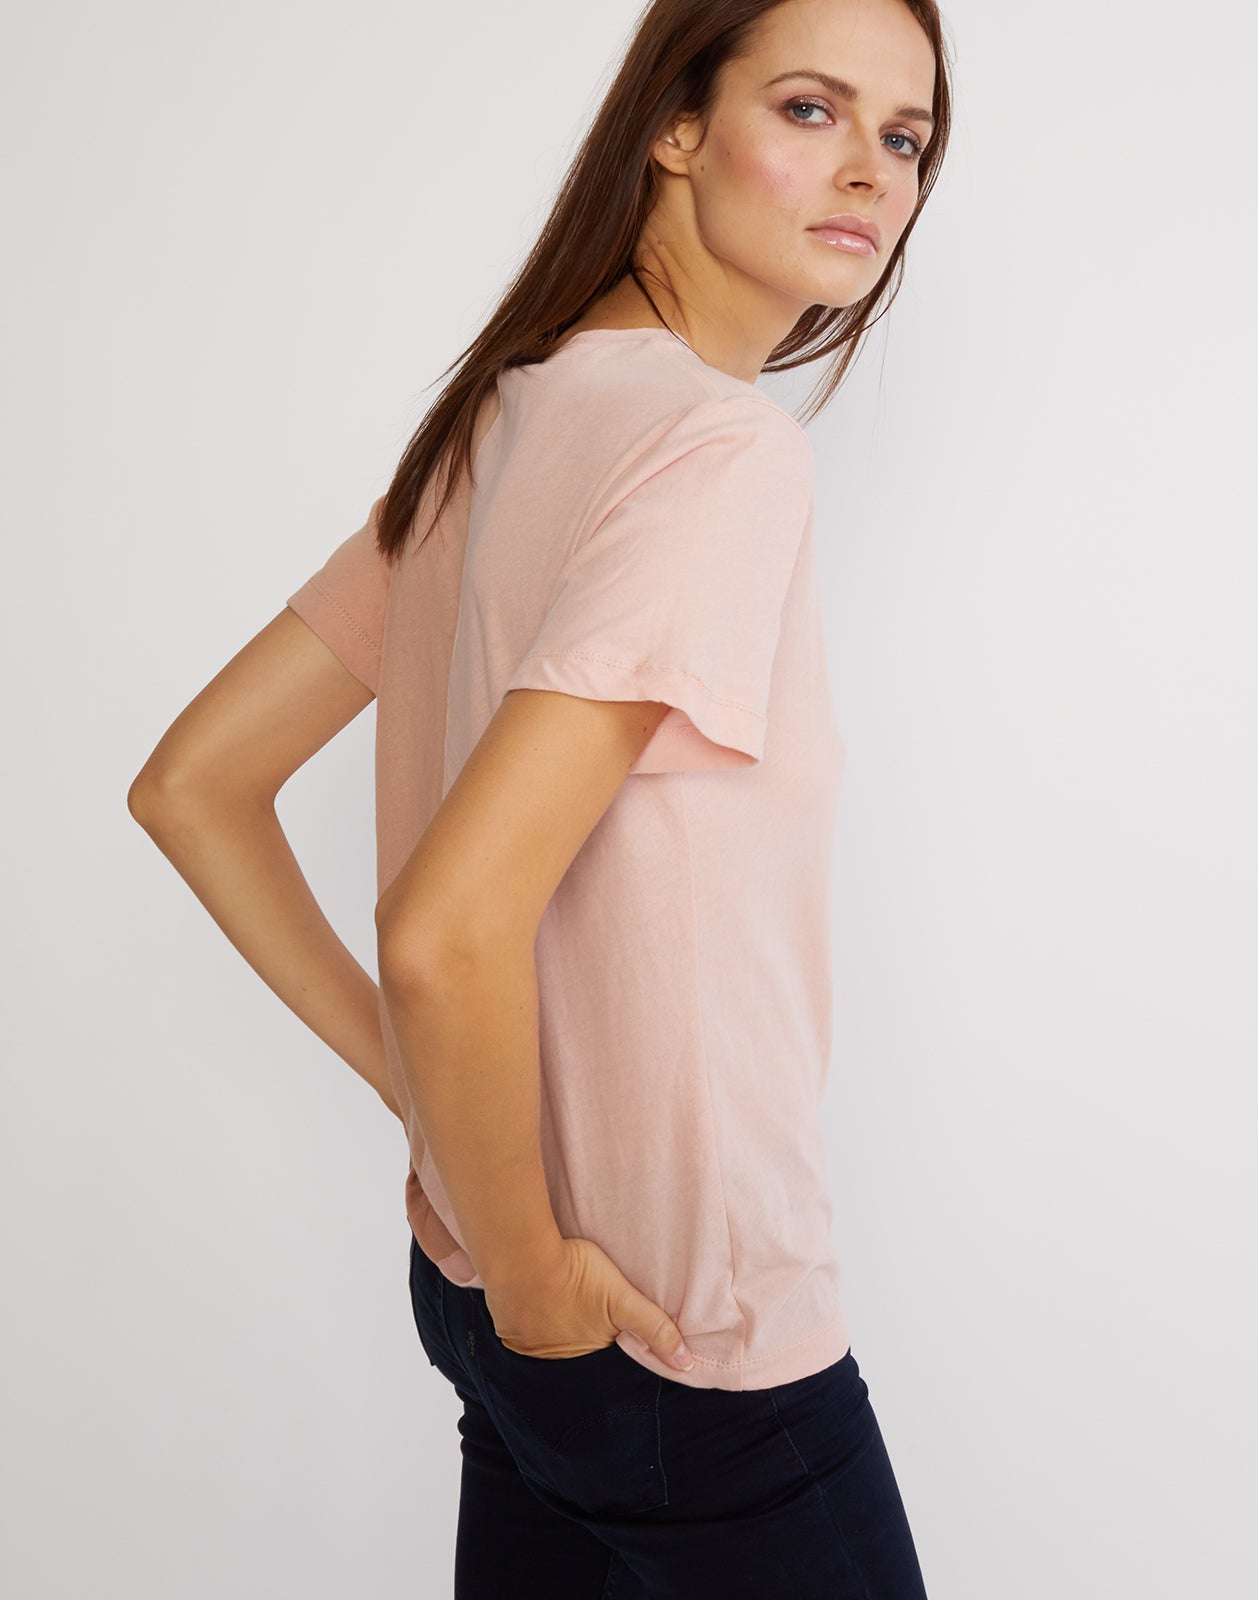 Side view of the short sleeved half beige, half pink caliyork tee in soft cotton.